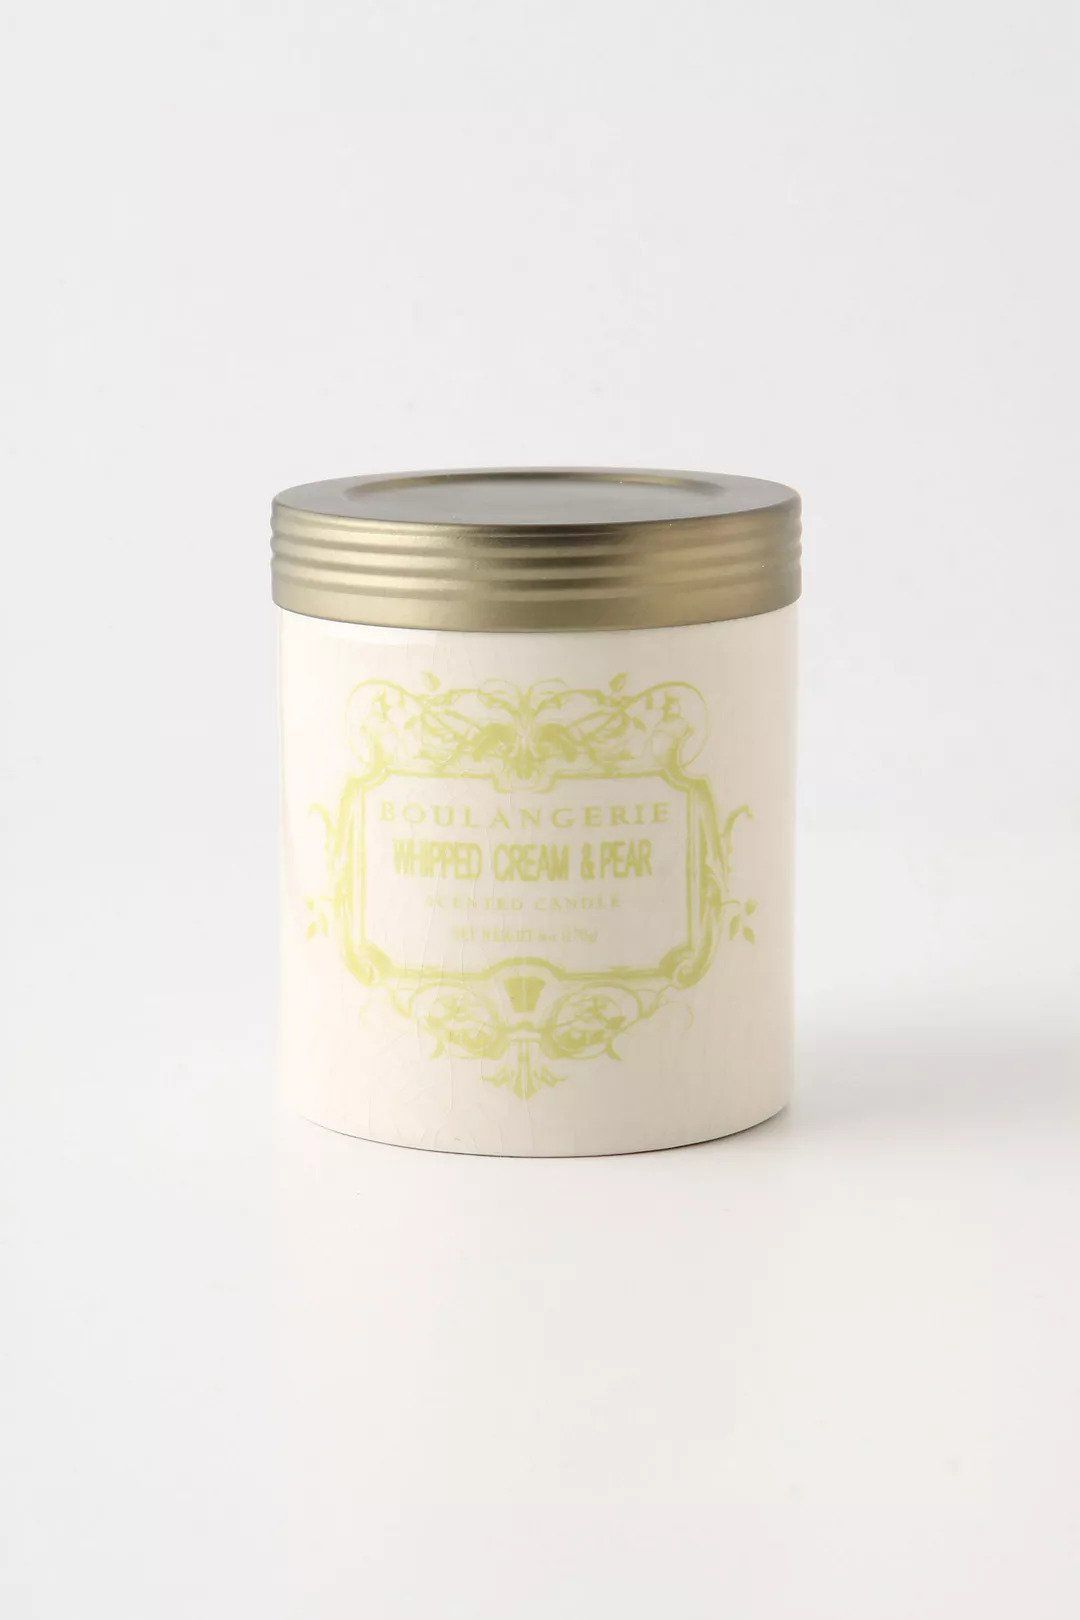 Whipped Cream & Pear Candle